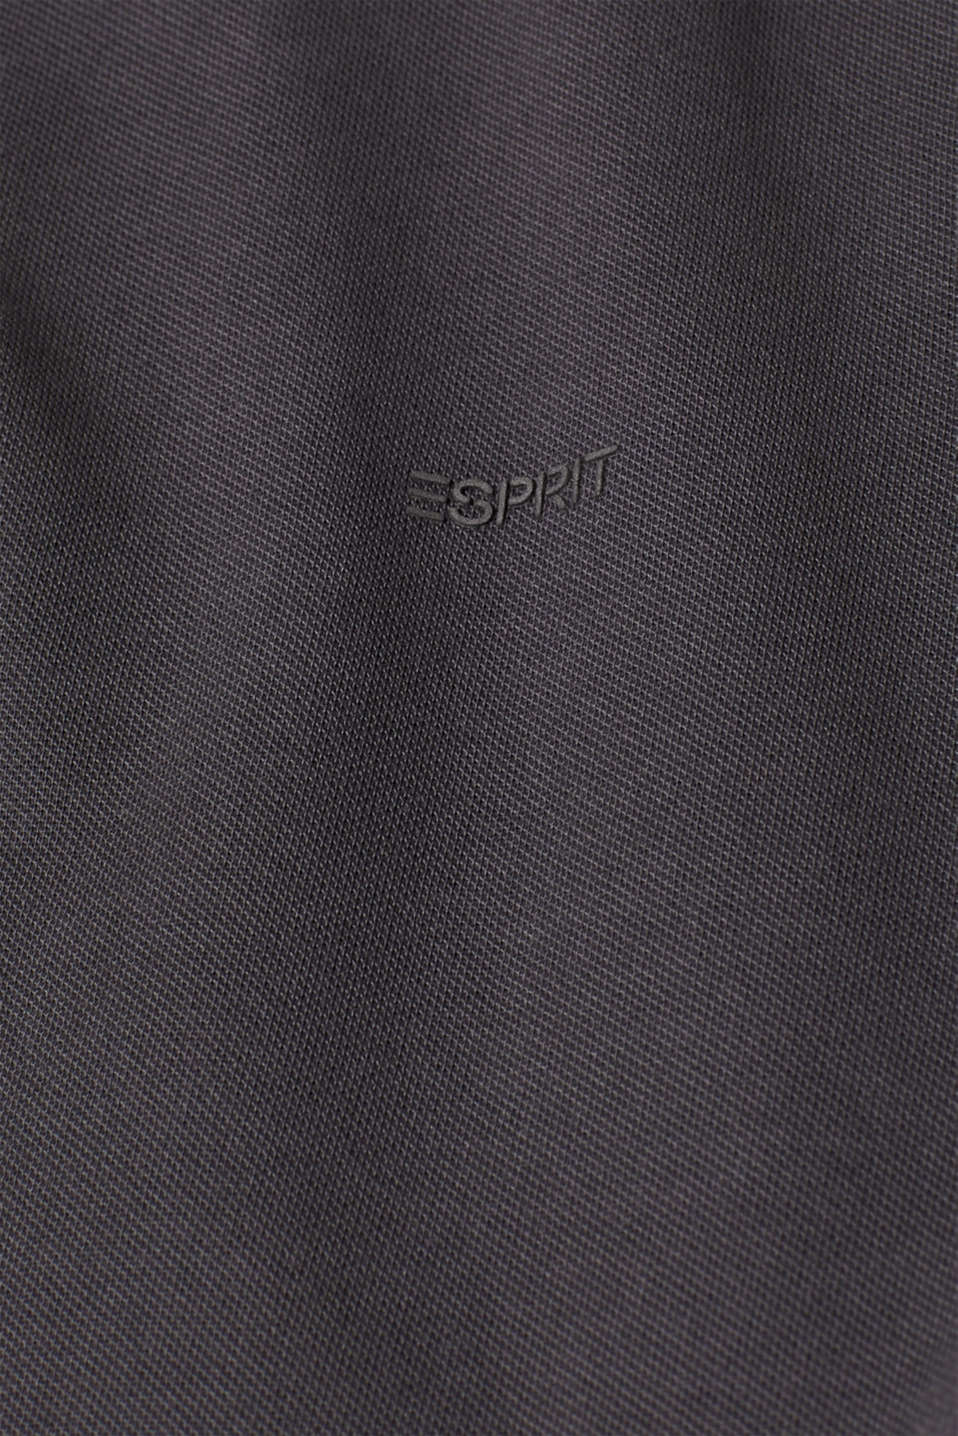 Piqué polo shirt in 100% cotton, DARK GREY, detail image number 4